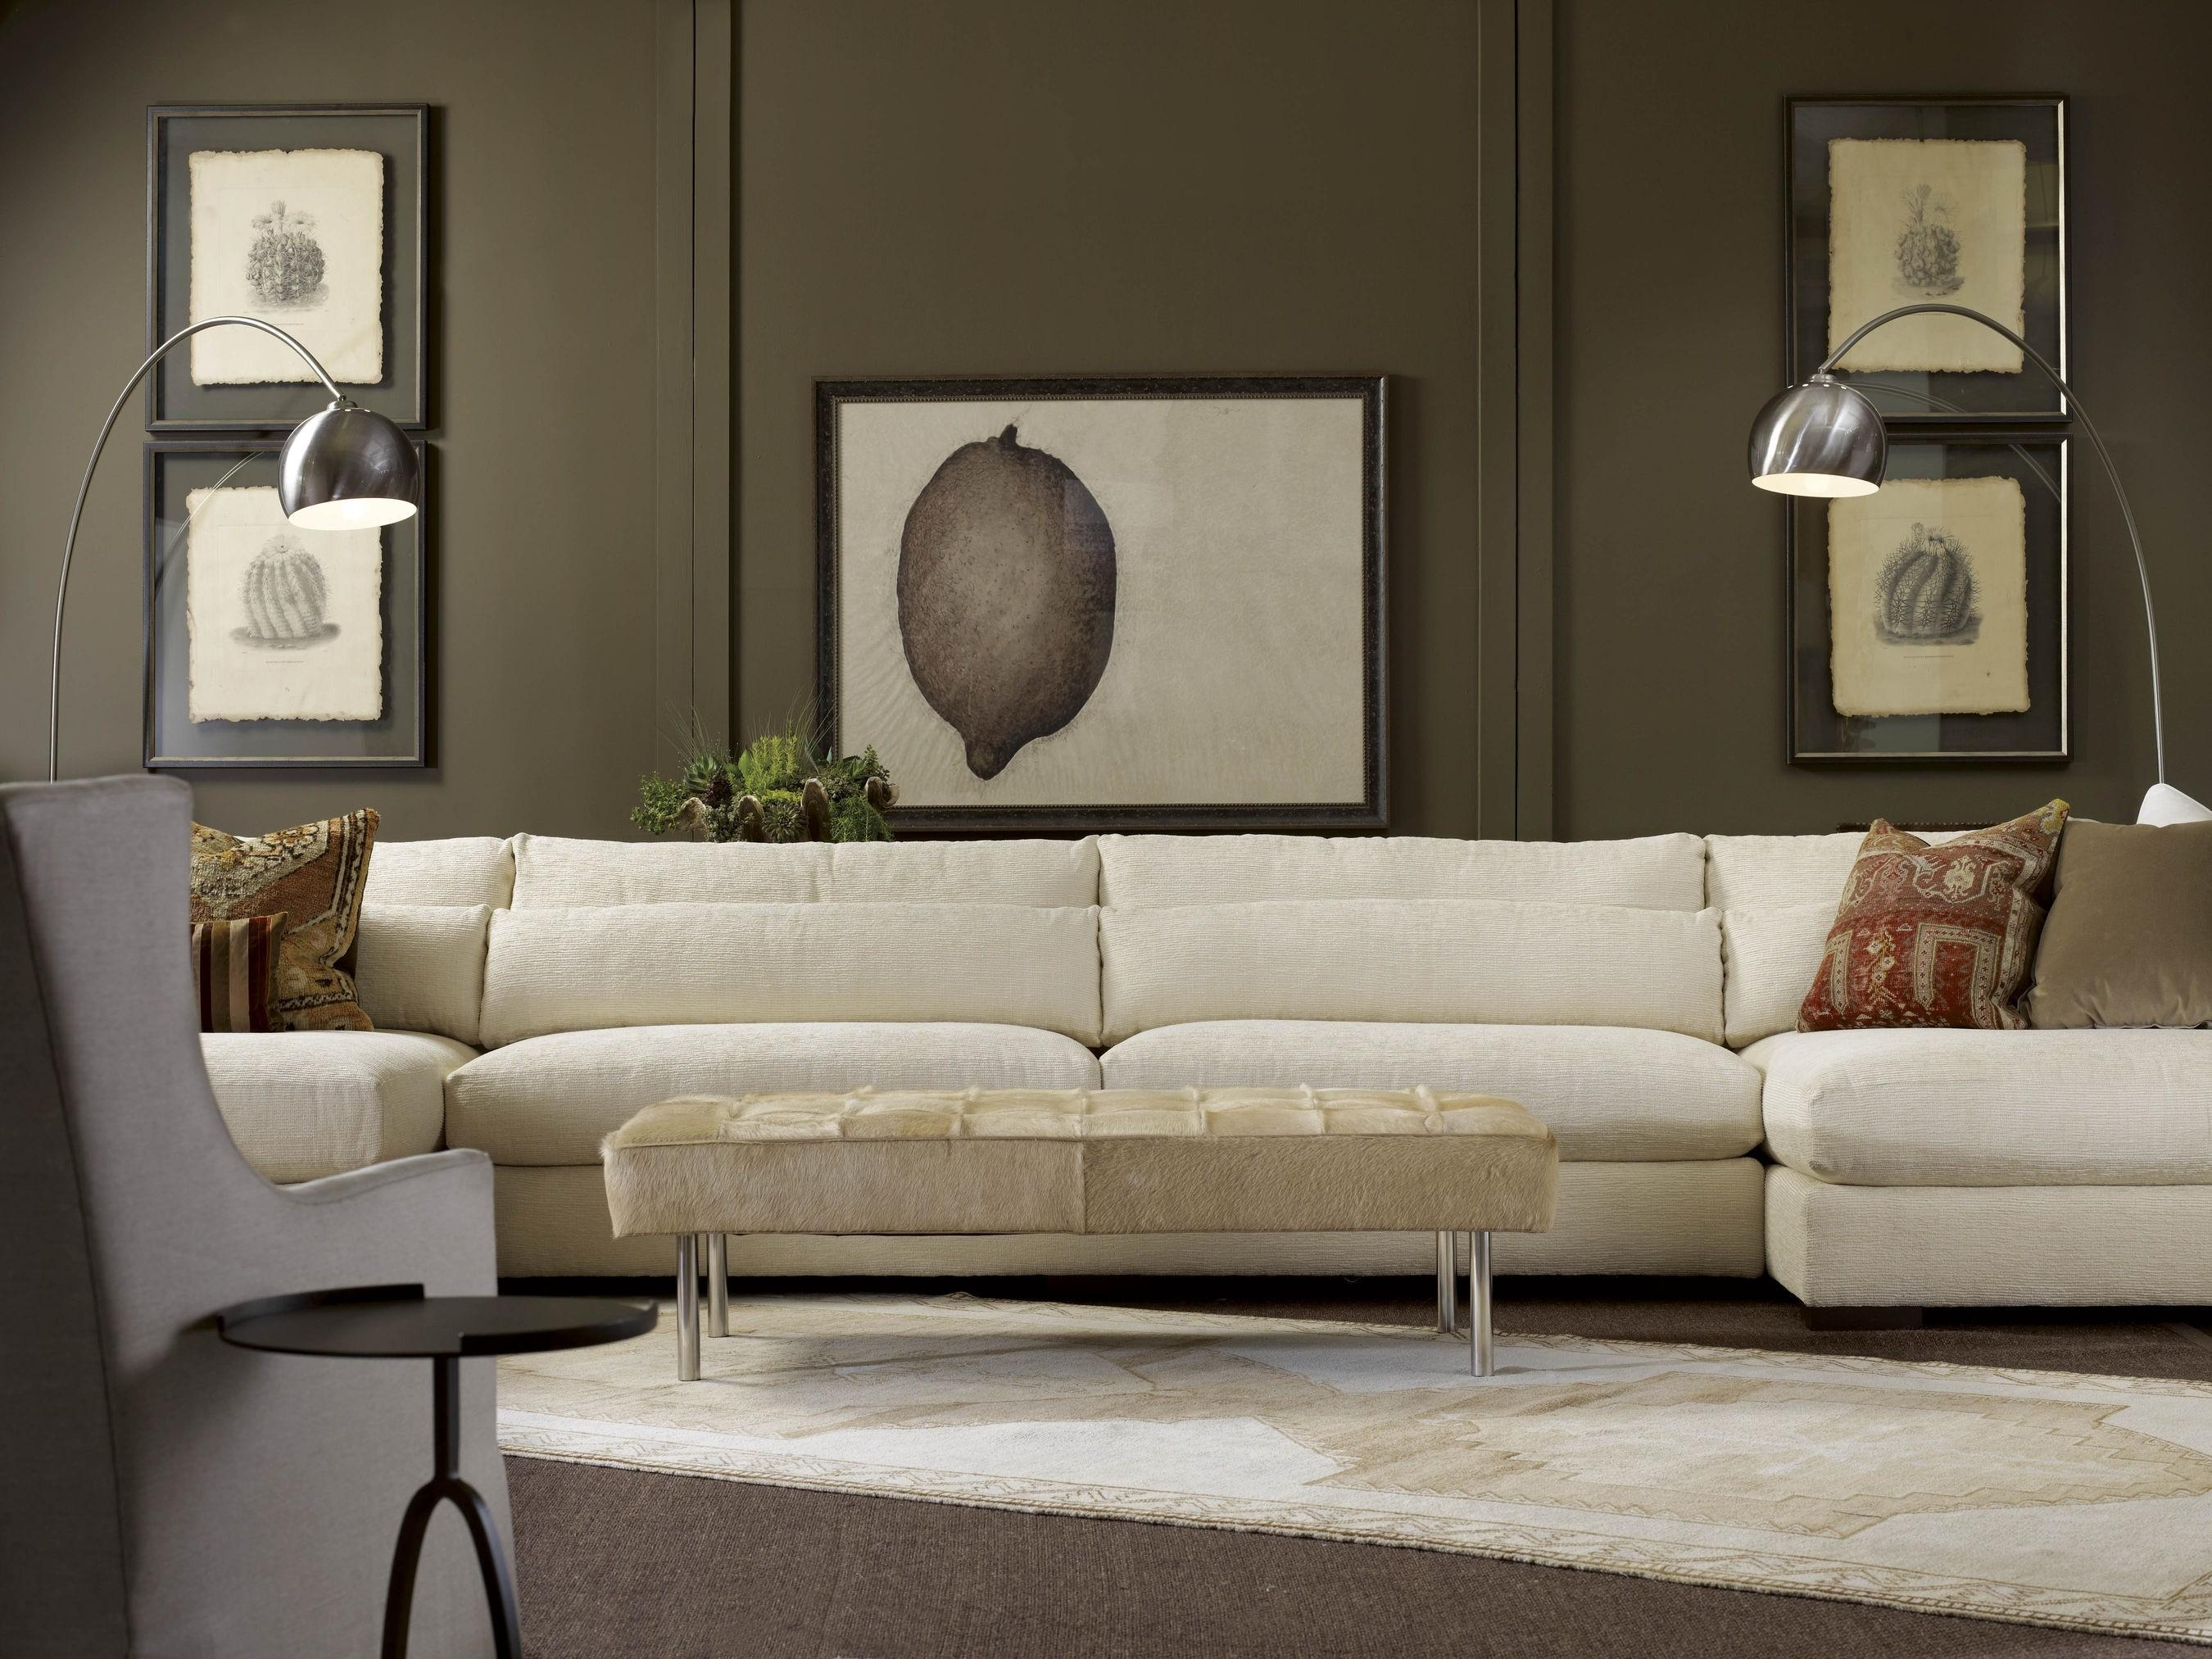 American Furniture | Menlo Park Double Sectional | Lee Industries For Lee Industries Sectional (View 2 of 20)